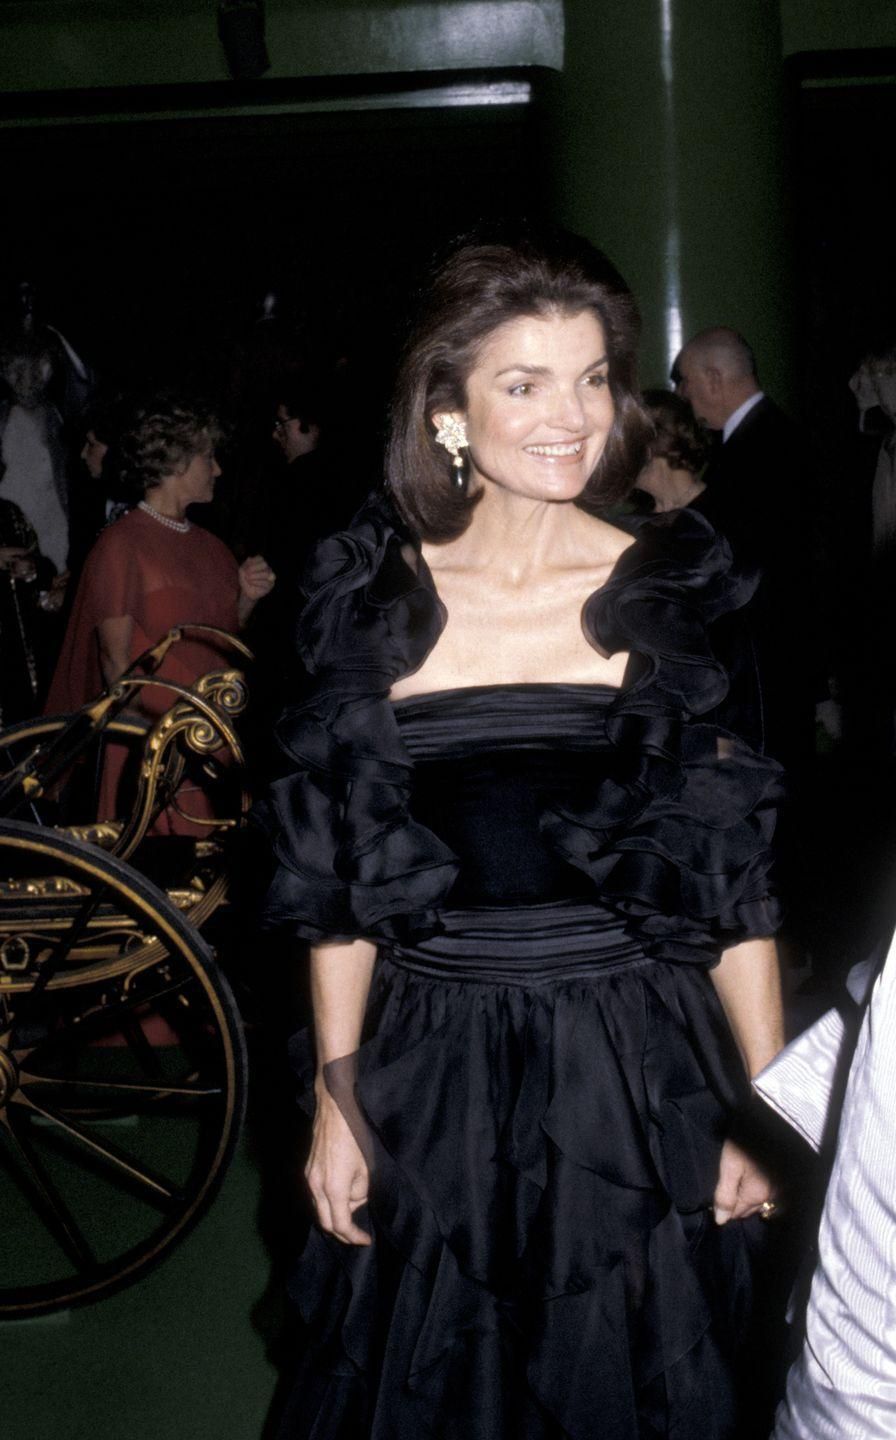 <p>Jackie attends the Costume Institute Gala at the Metropolitan Museum of Art in New York wearing a velvet and chiffon black evening gown with oversize statement earrings. </p>